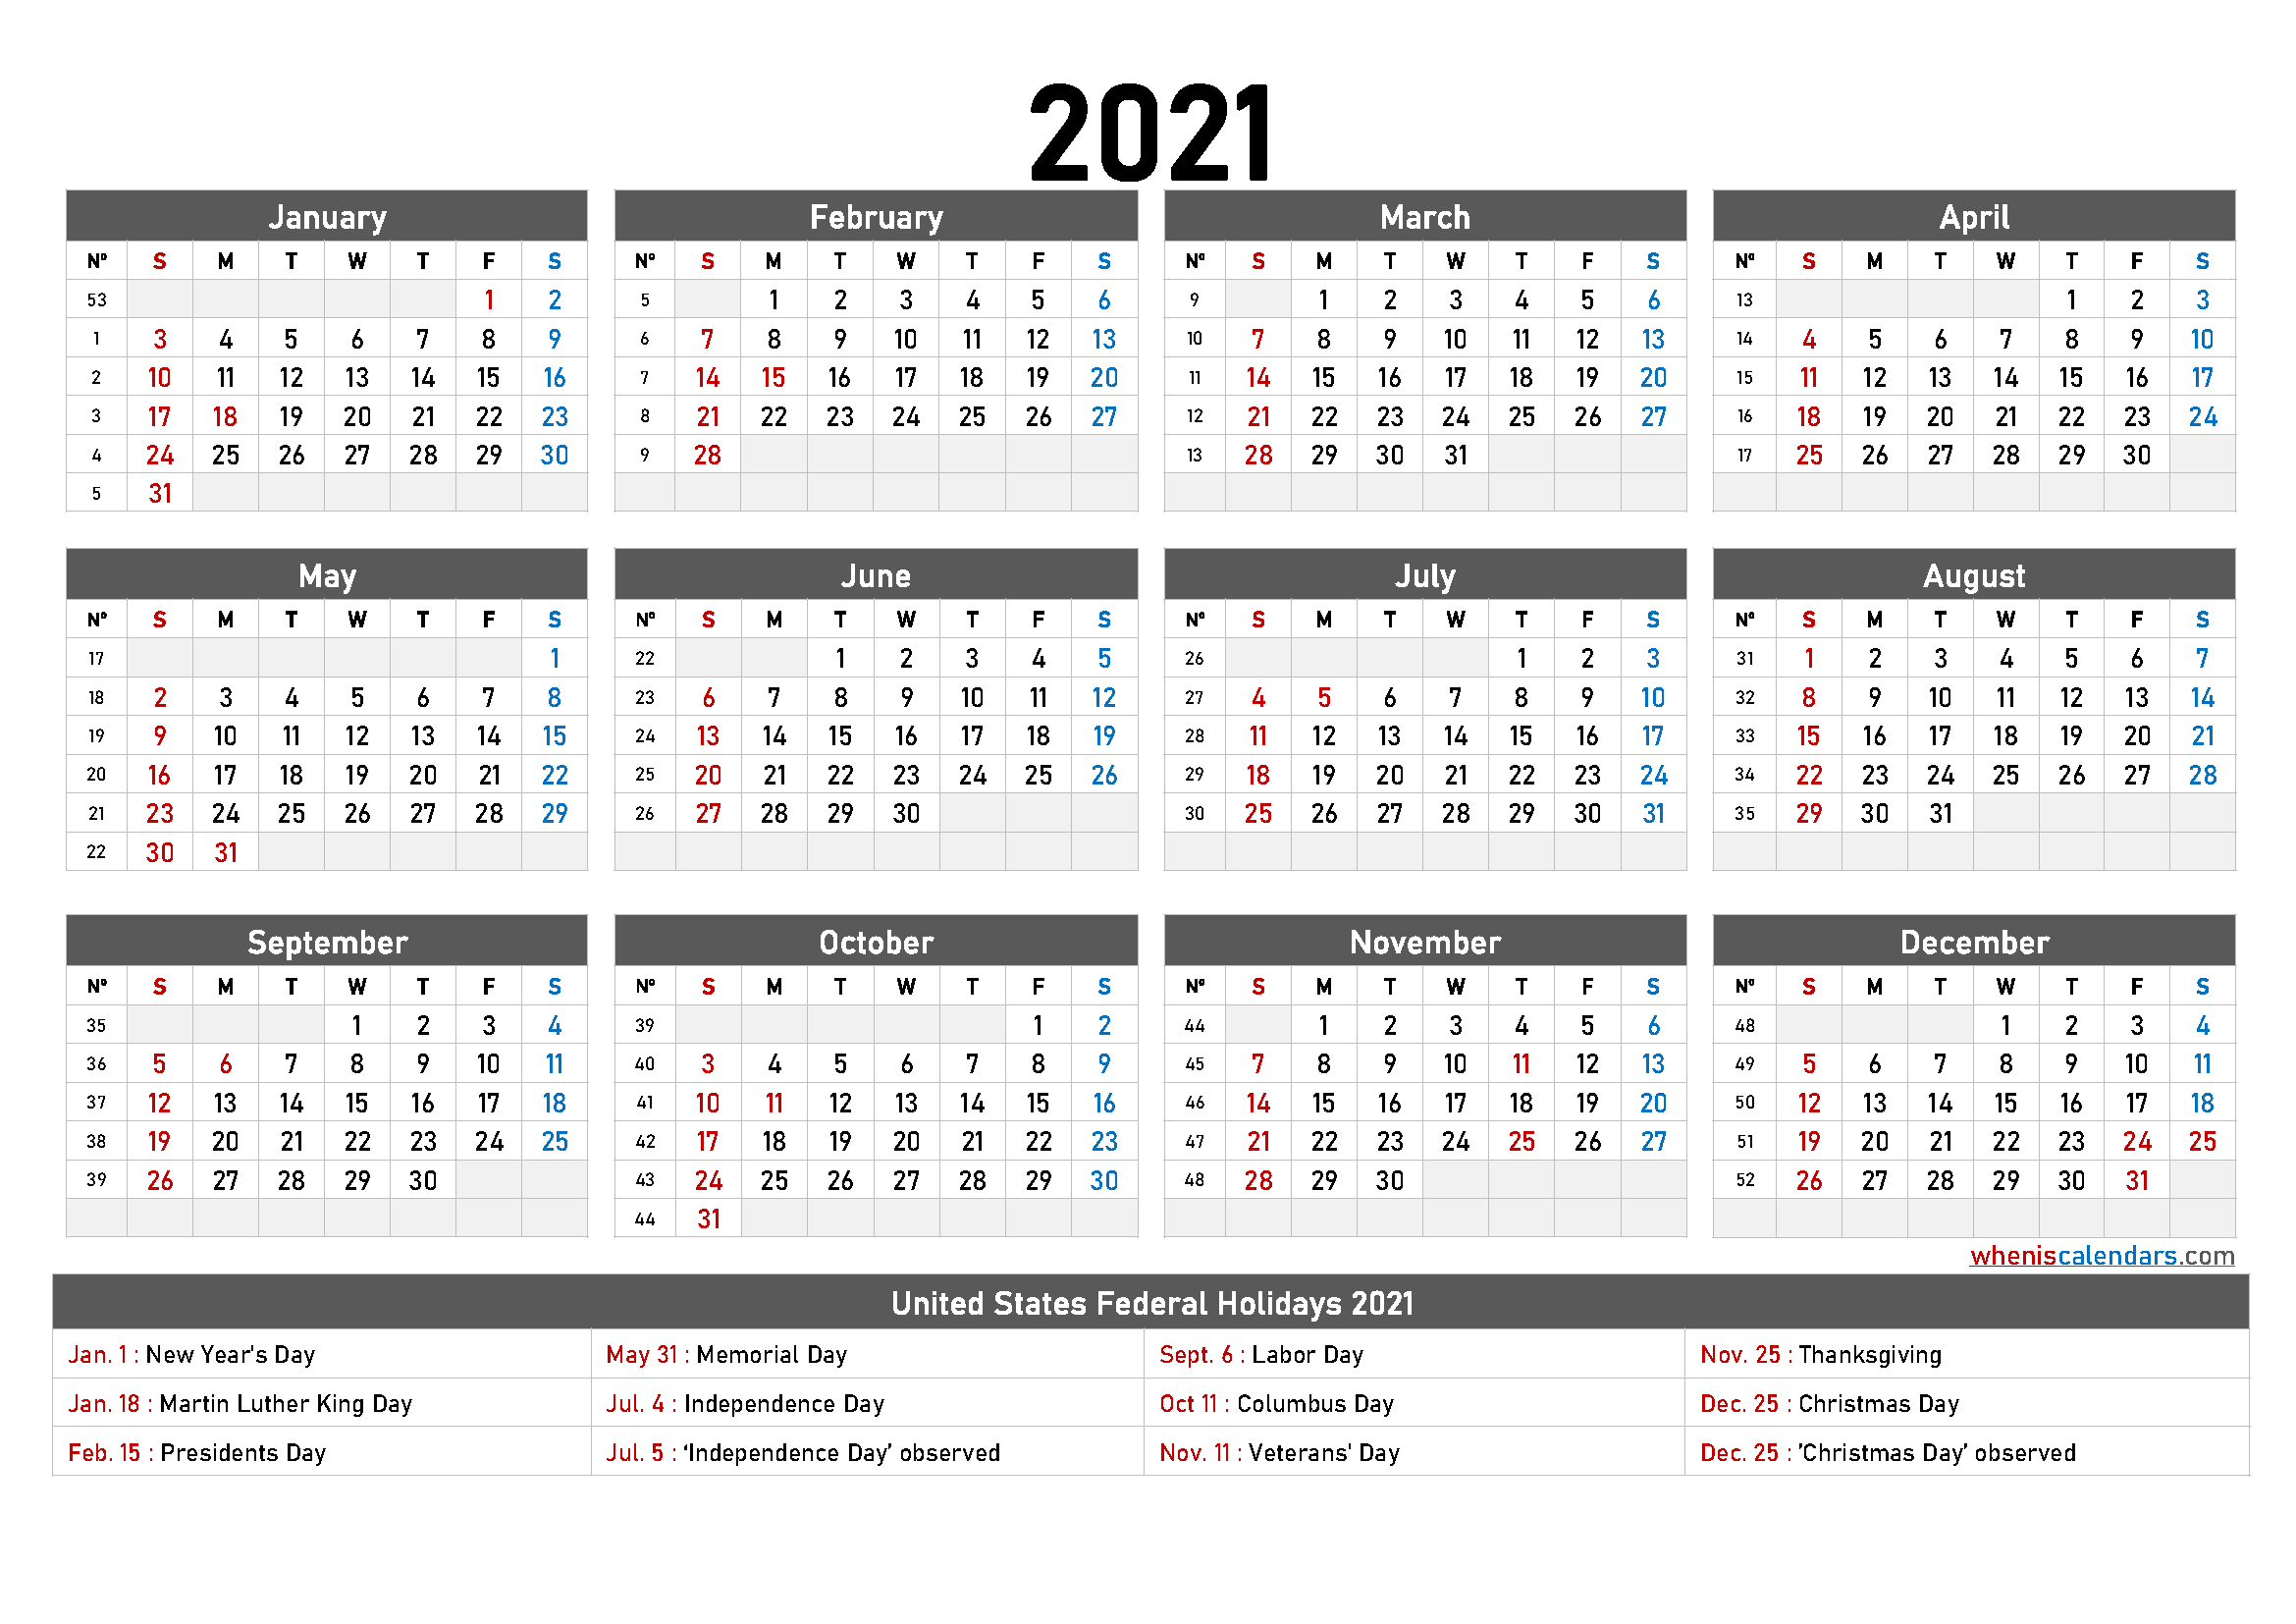 free printable 2021 calendar with holidays. full year calendar 2021 on one page